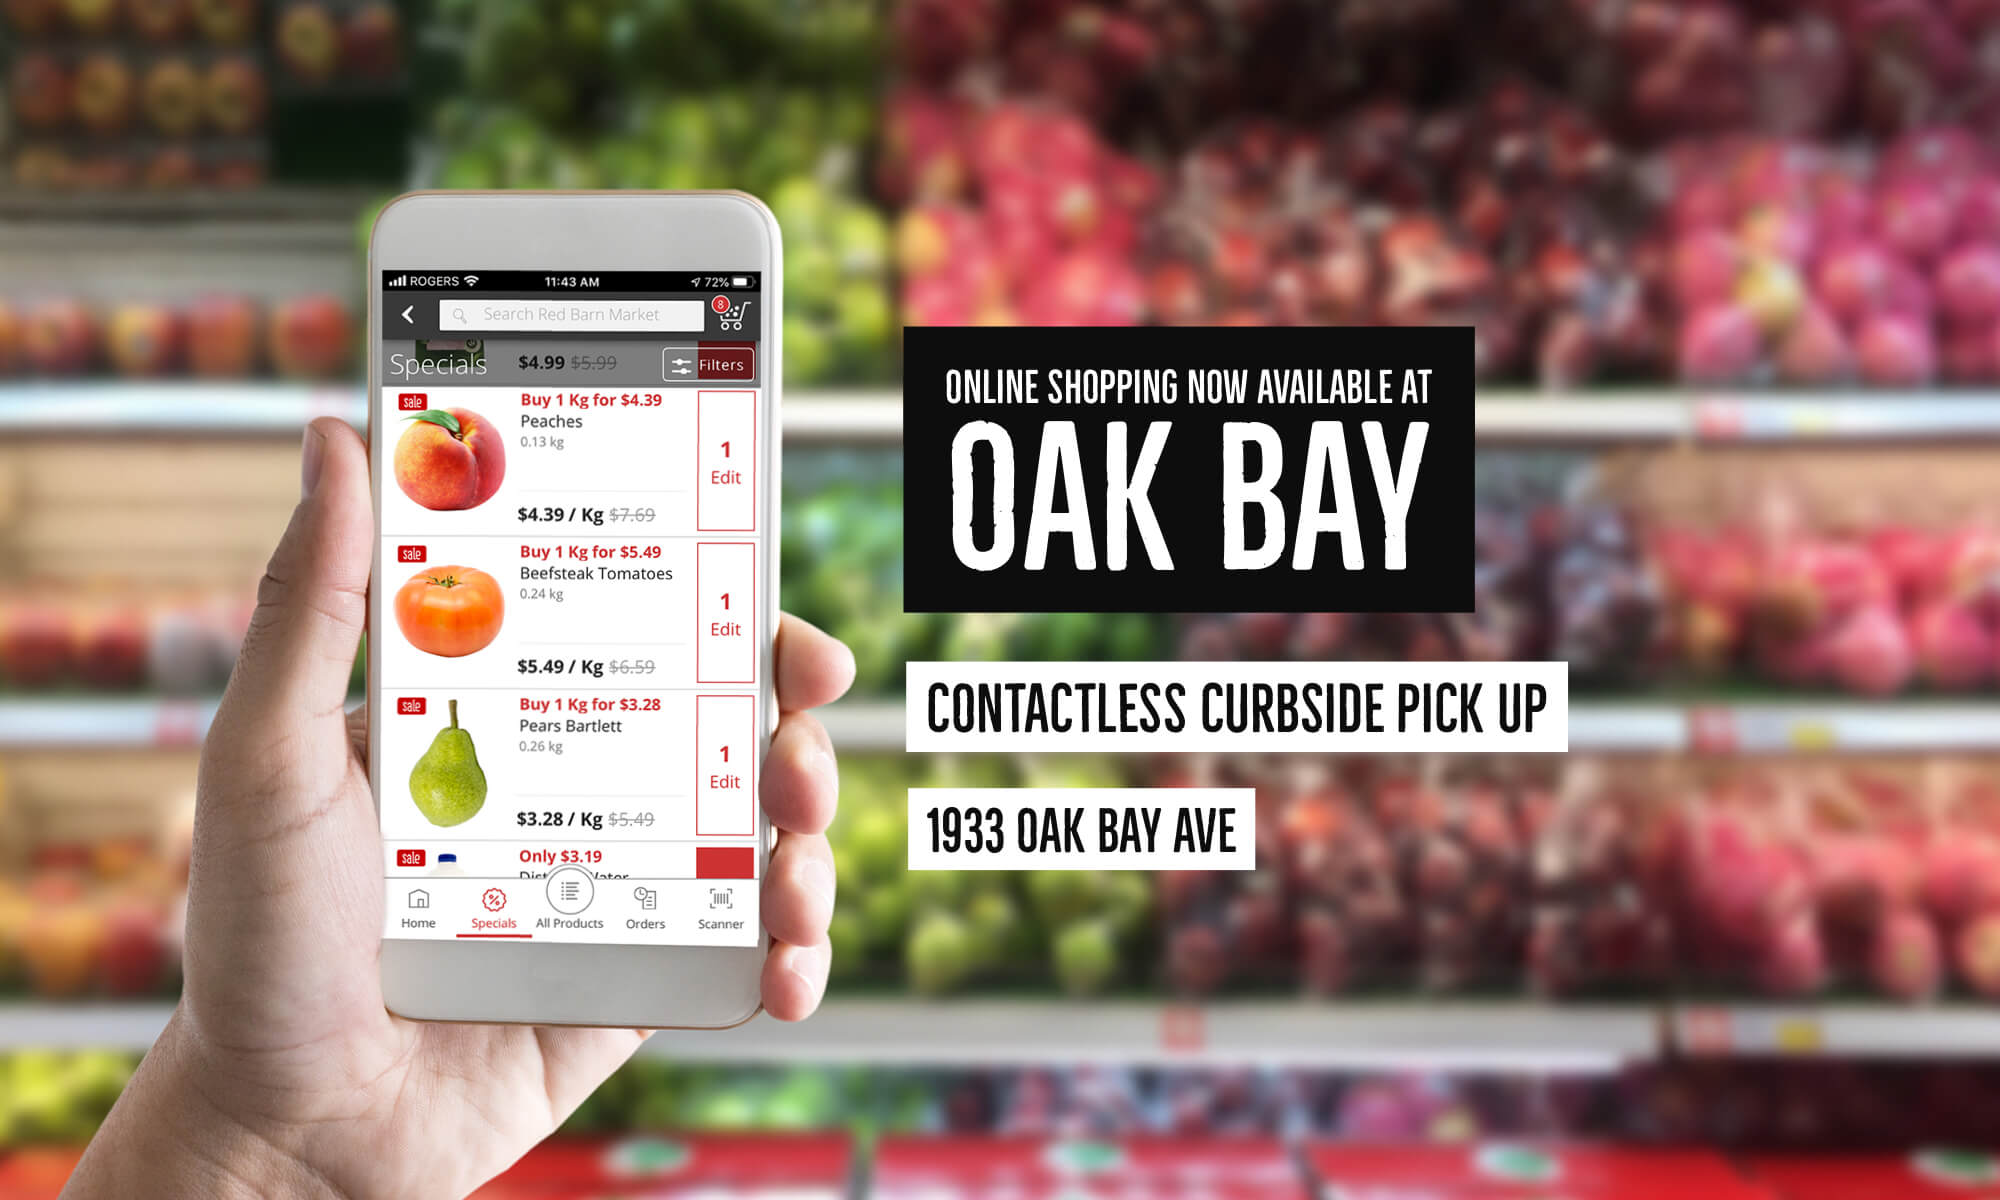 Shop Online and Pick Up at Oak Bay 🛒 Shop our Weekly Specials, explore a wider variety of Fruits and Vegetables, Red Barn Smokehouse Cheese and Meats, and hundreds of Grocery items.🍎<br />